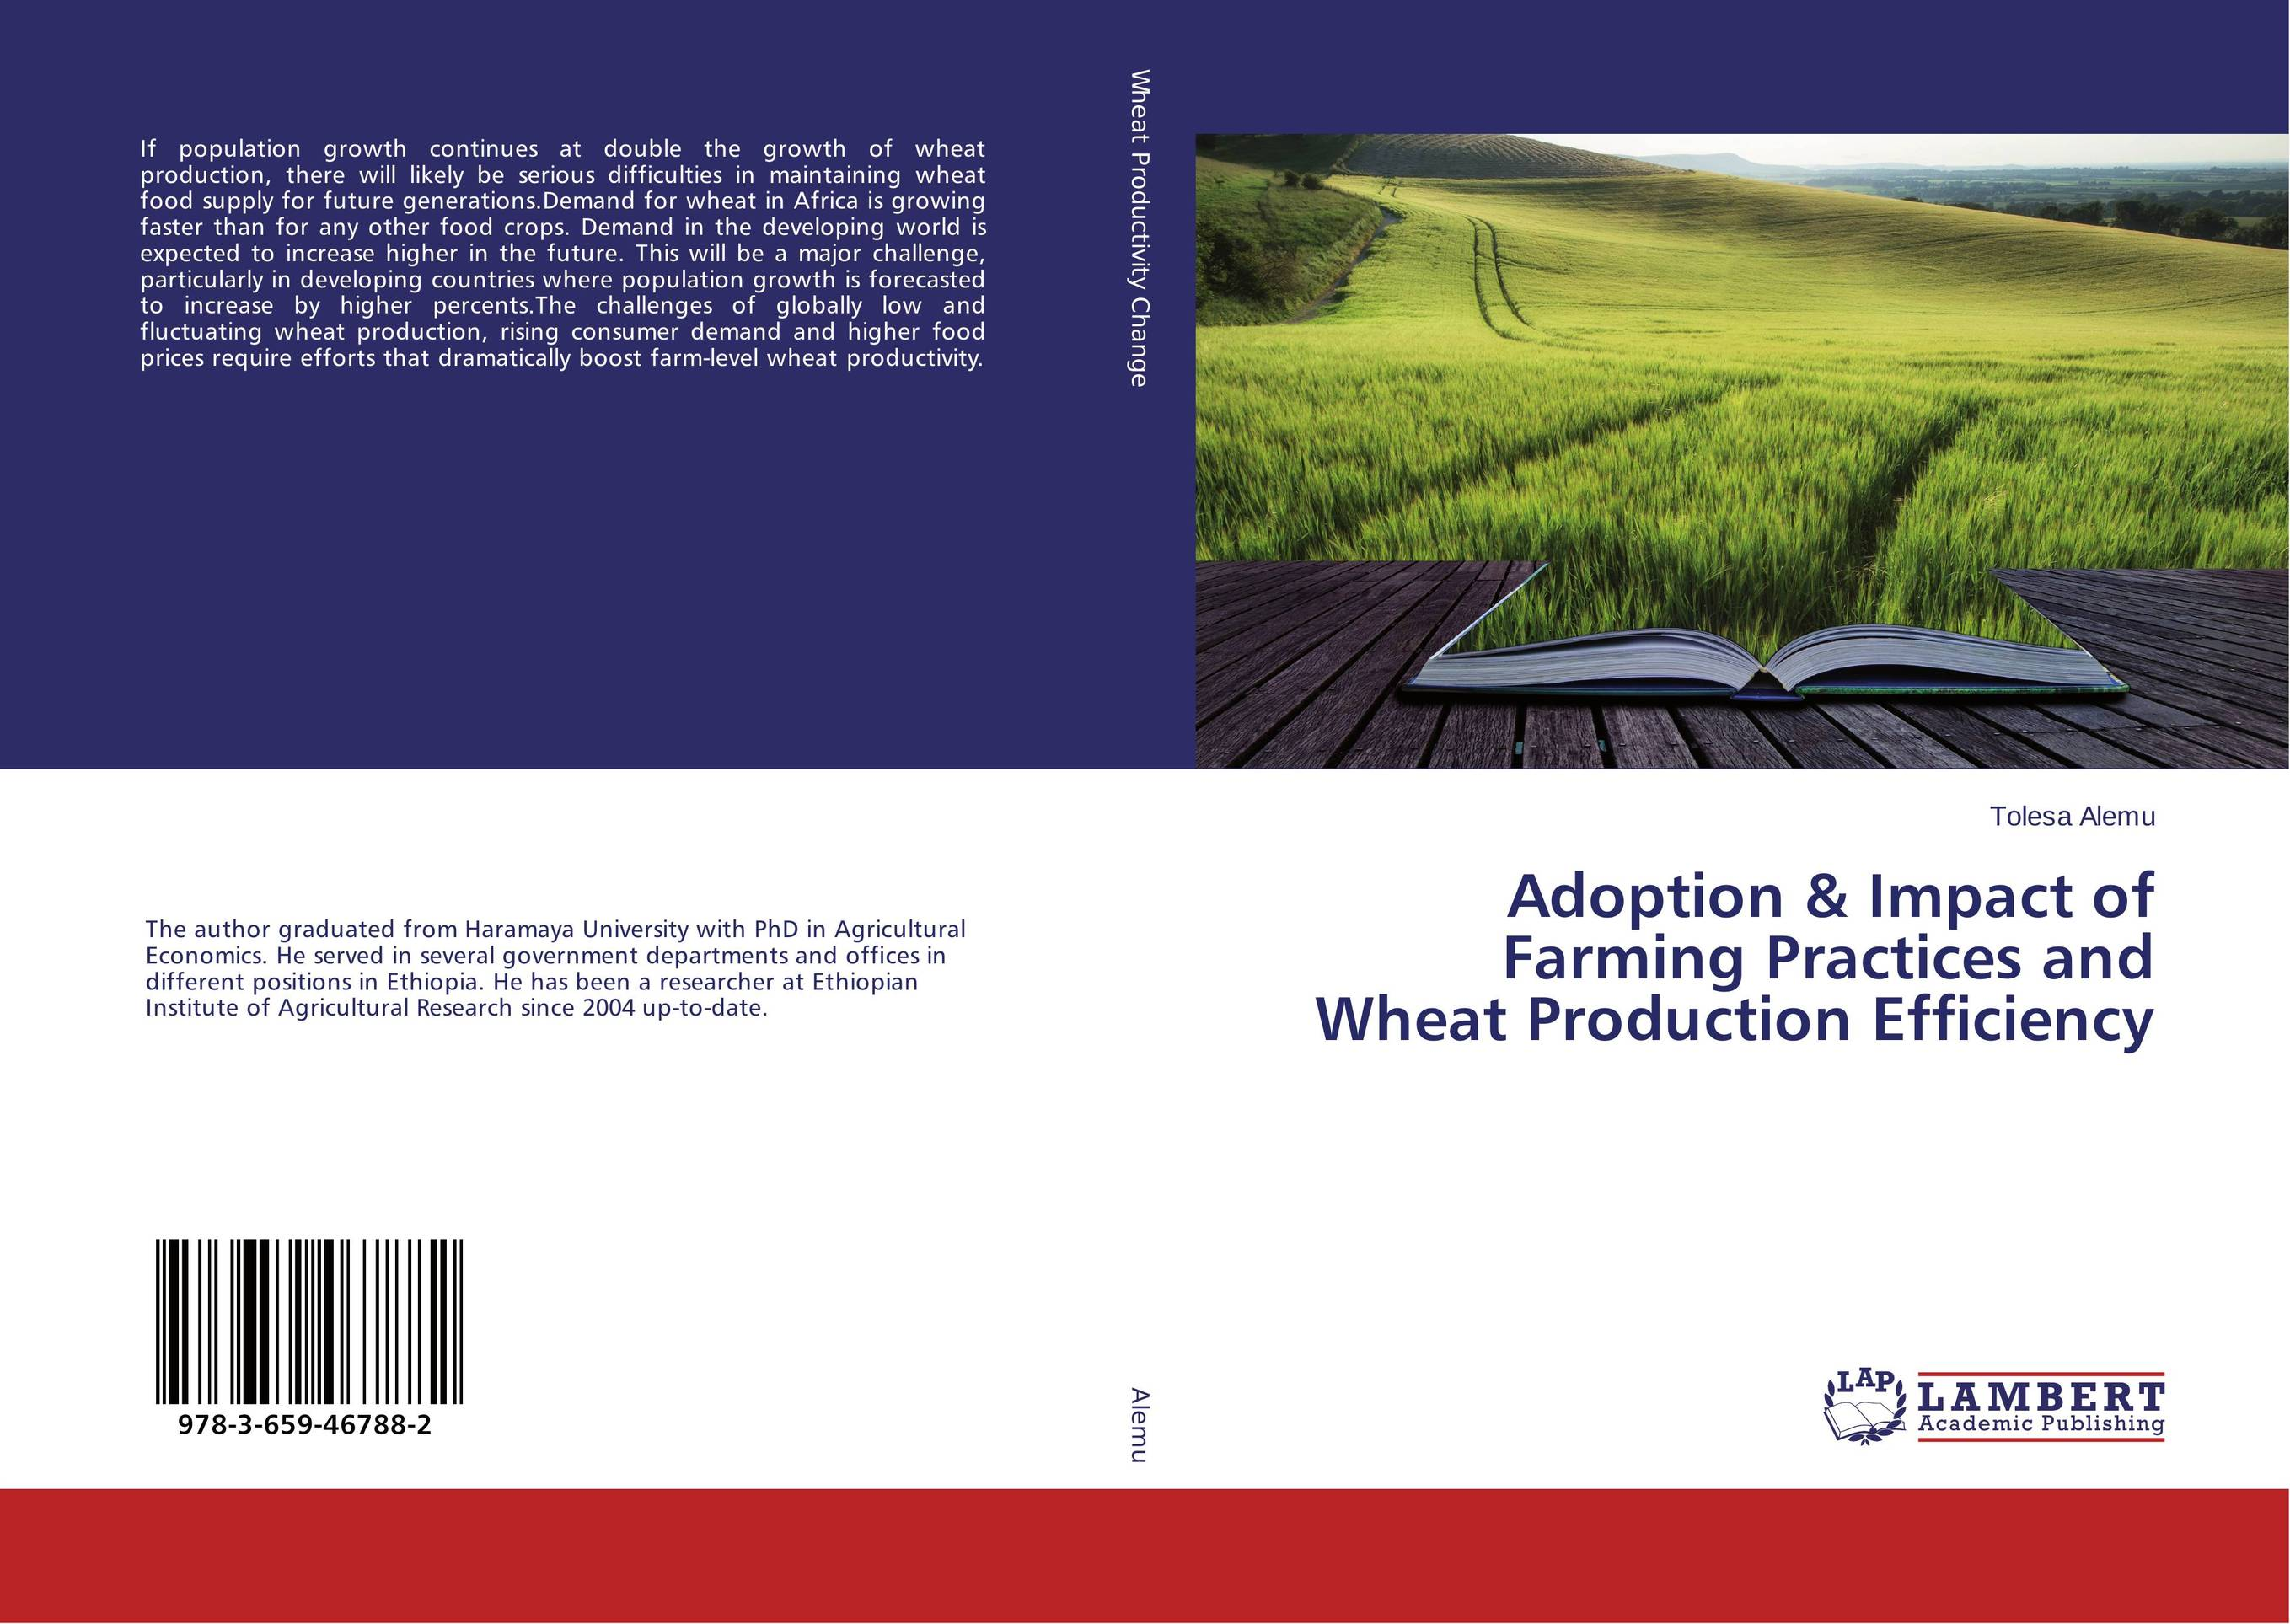 Adoption & Impact of Farming Practices and Wheat Production Efficiency wheat breeding for rust resistance